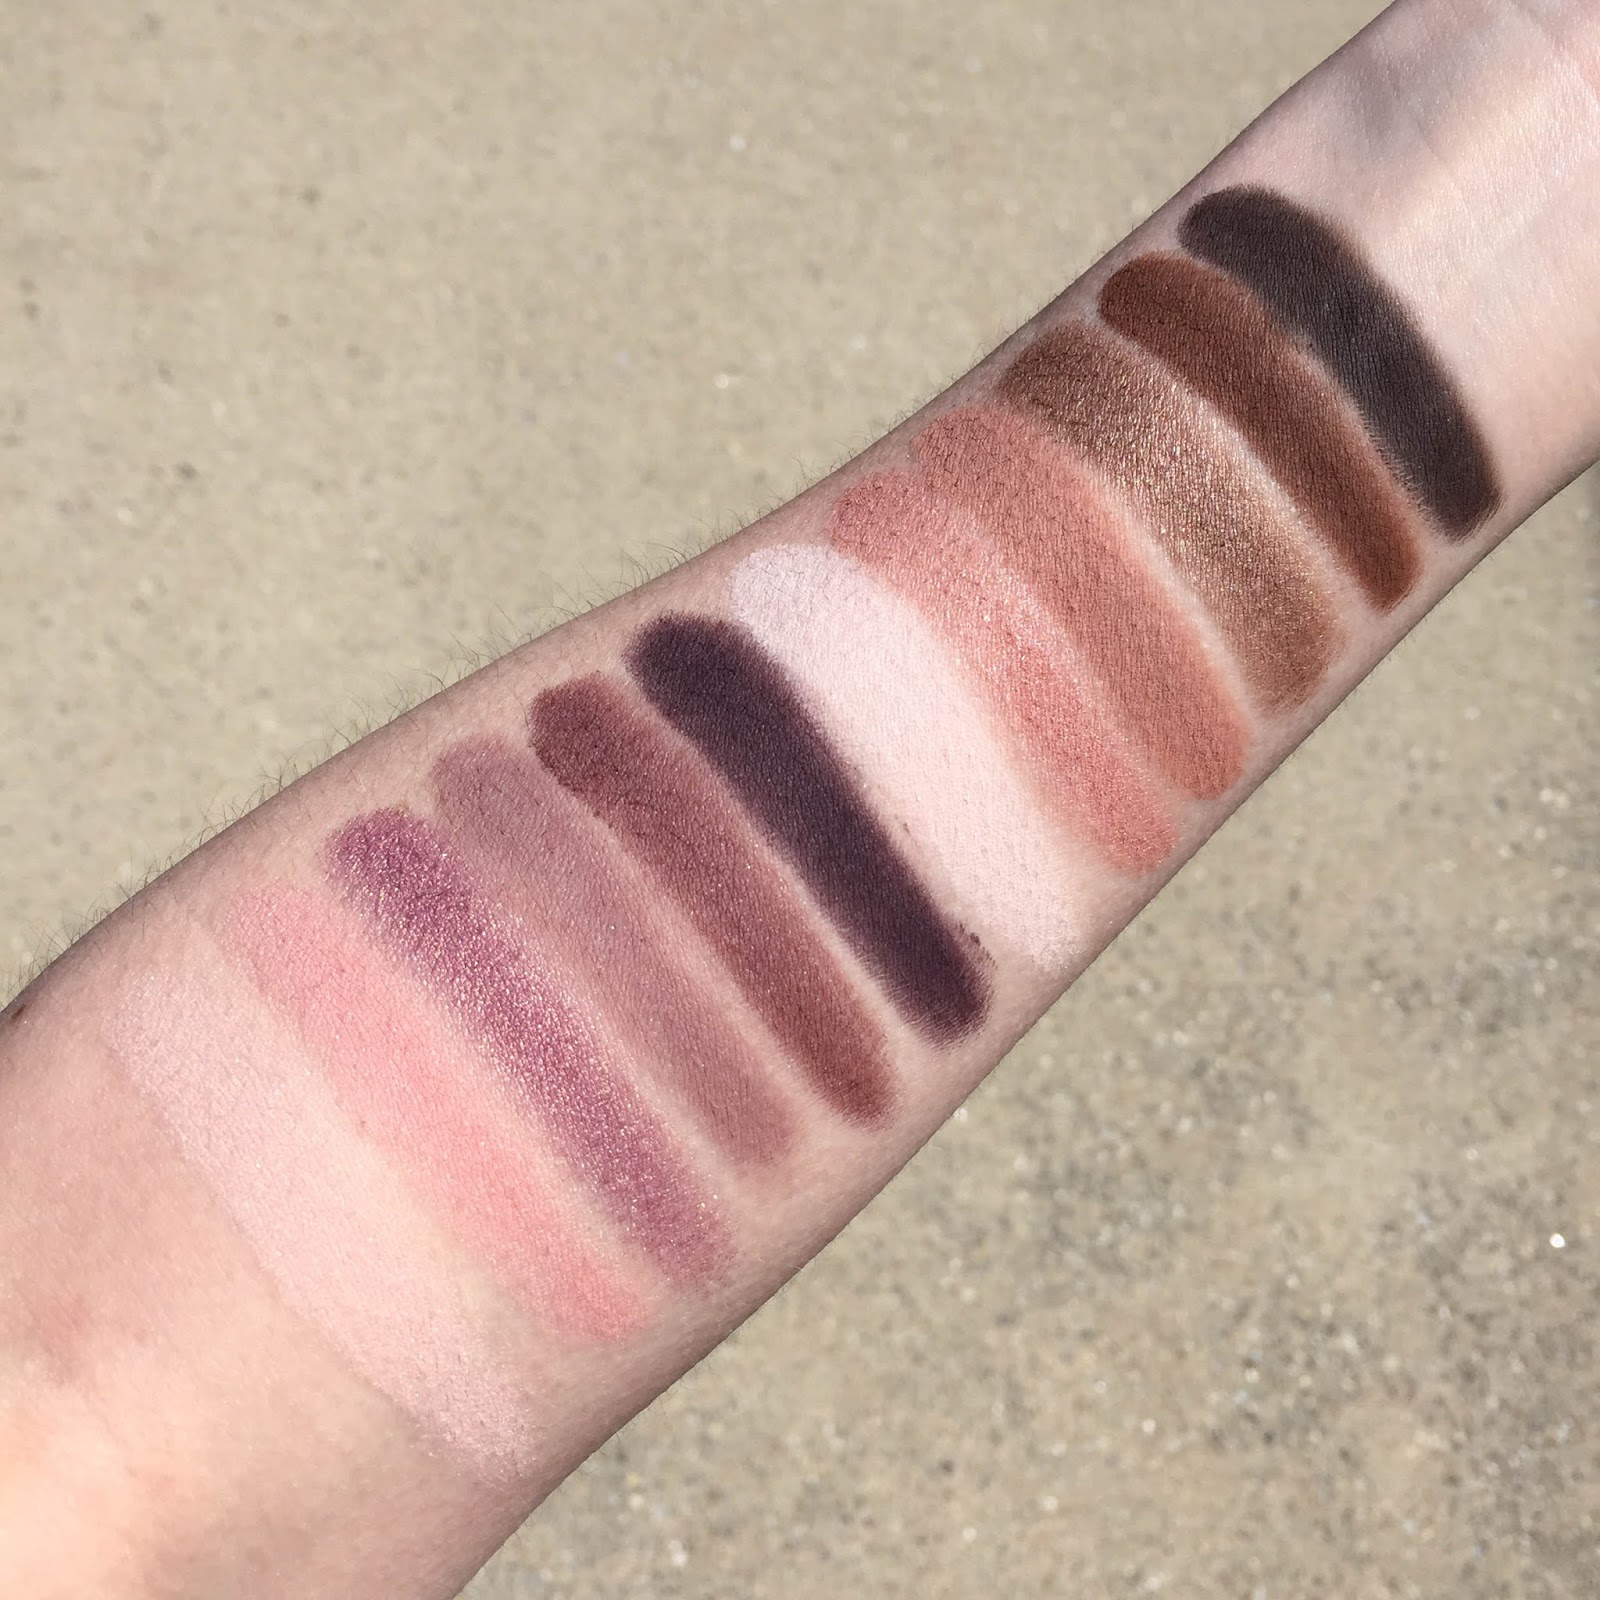 Laura Mercier Artist's Palette swatches on fair skin